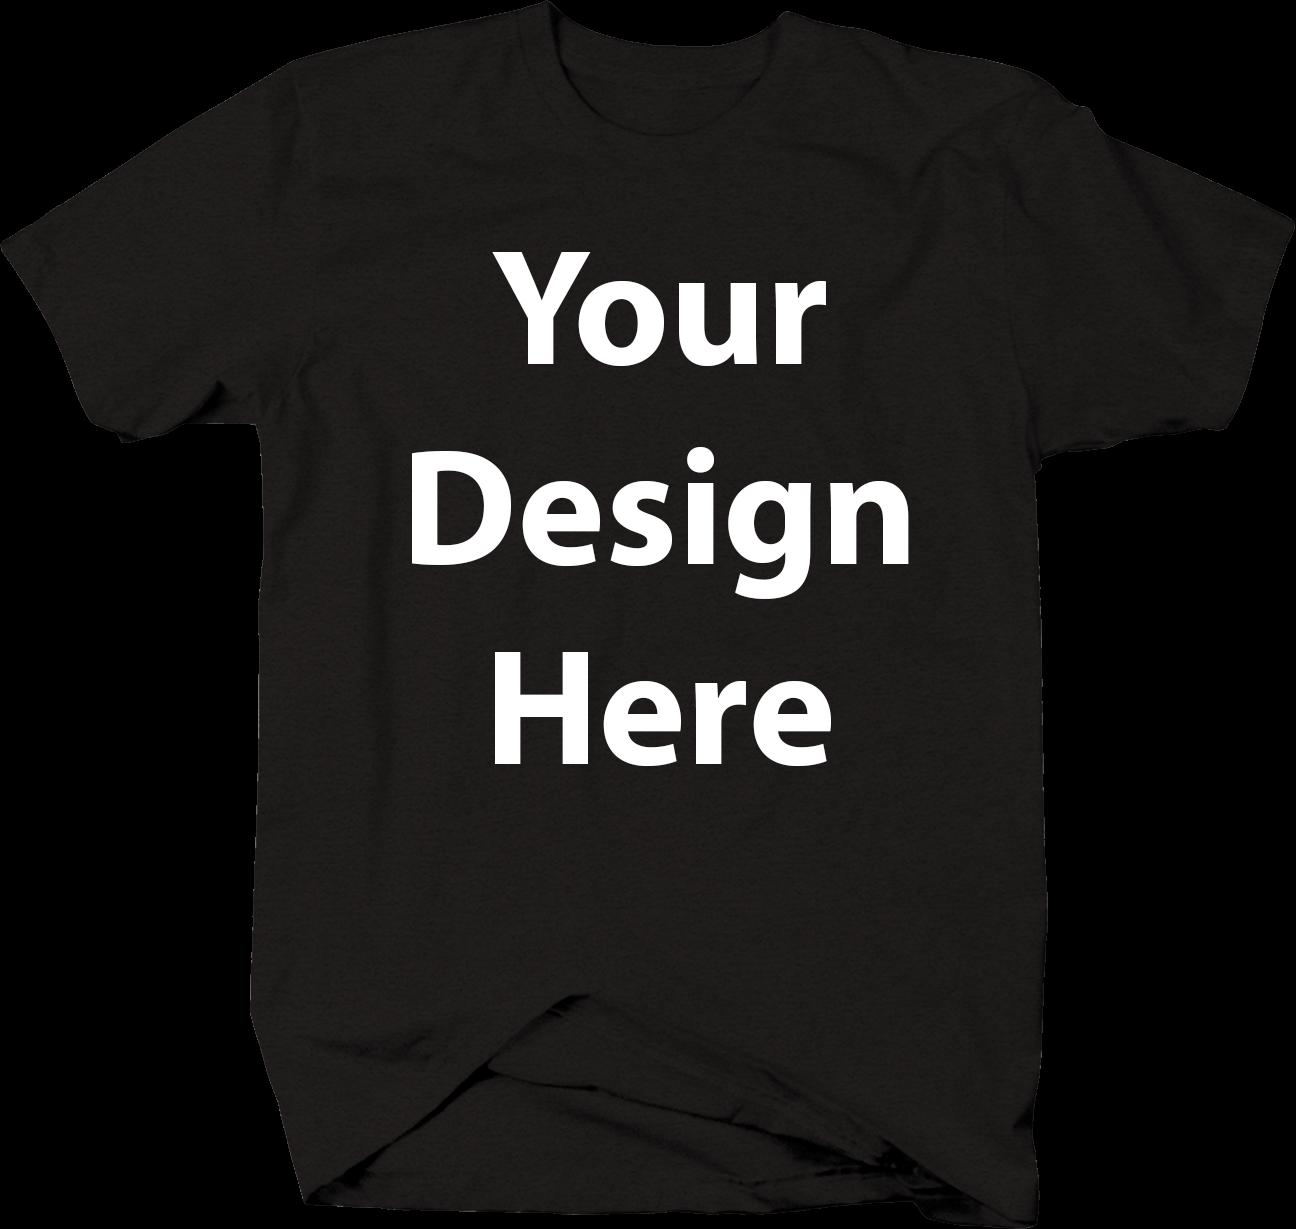 611567e0 PERSONALIZED CUSTOM PRINT YOUR OWN FULL COLOR IMAGE OR TEXT ON T SHIRT TEE  MEN'S Tees Custom Jersey T Shirt Shirt Online Cartoon T Shirts From  Lookcup, ...